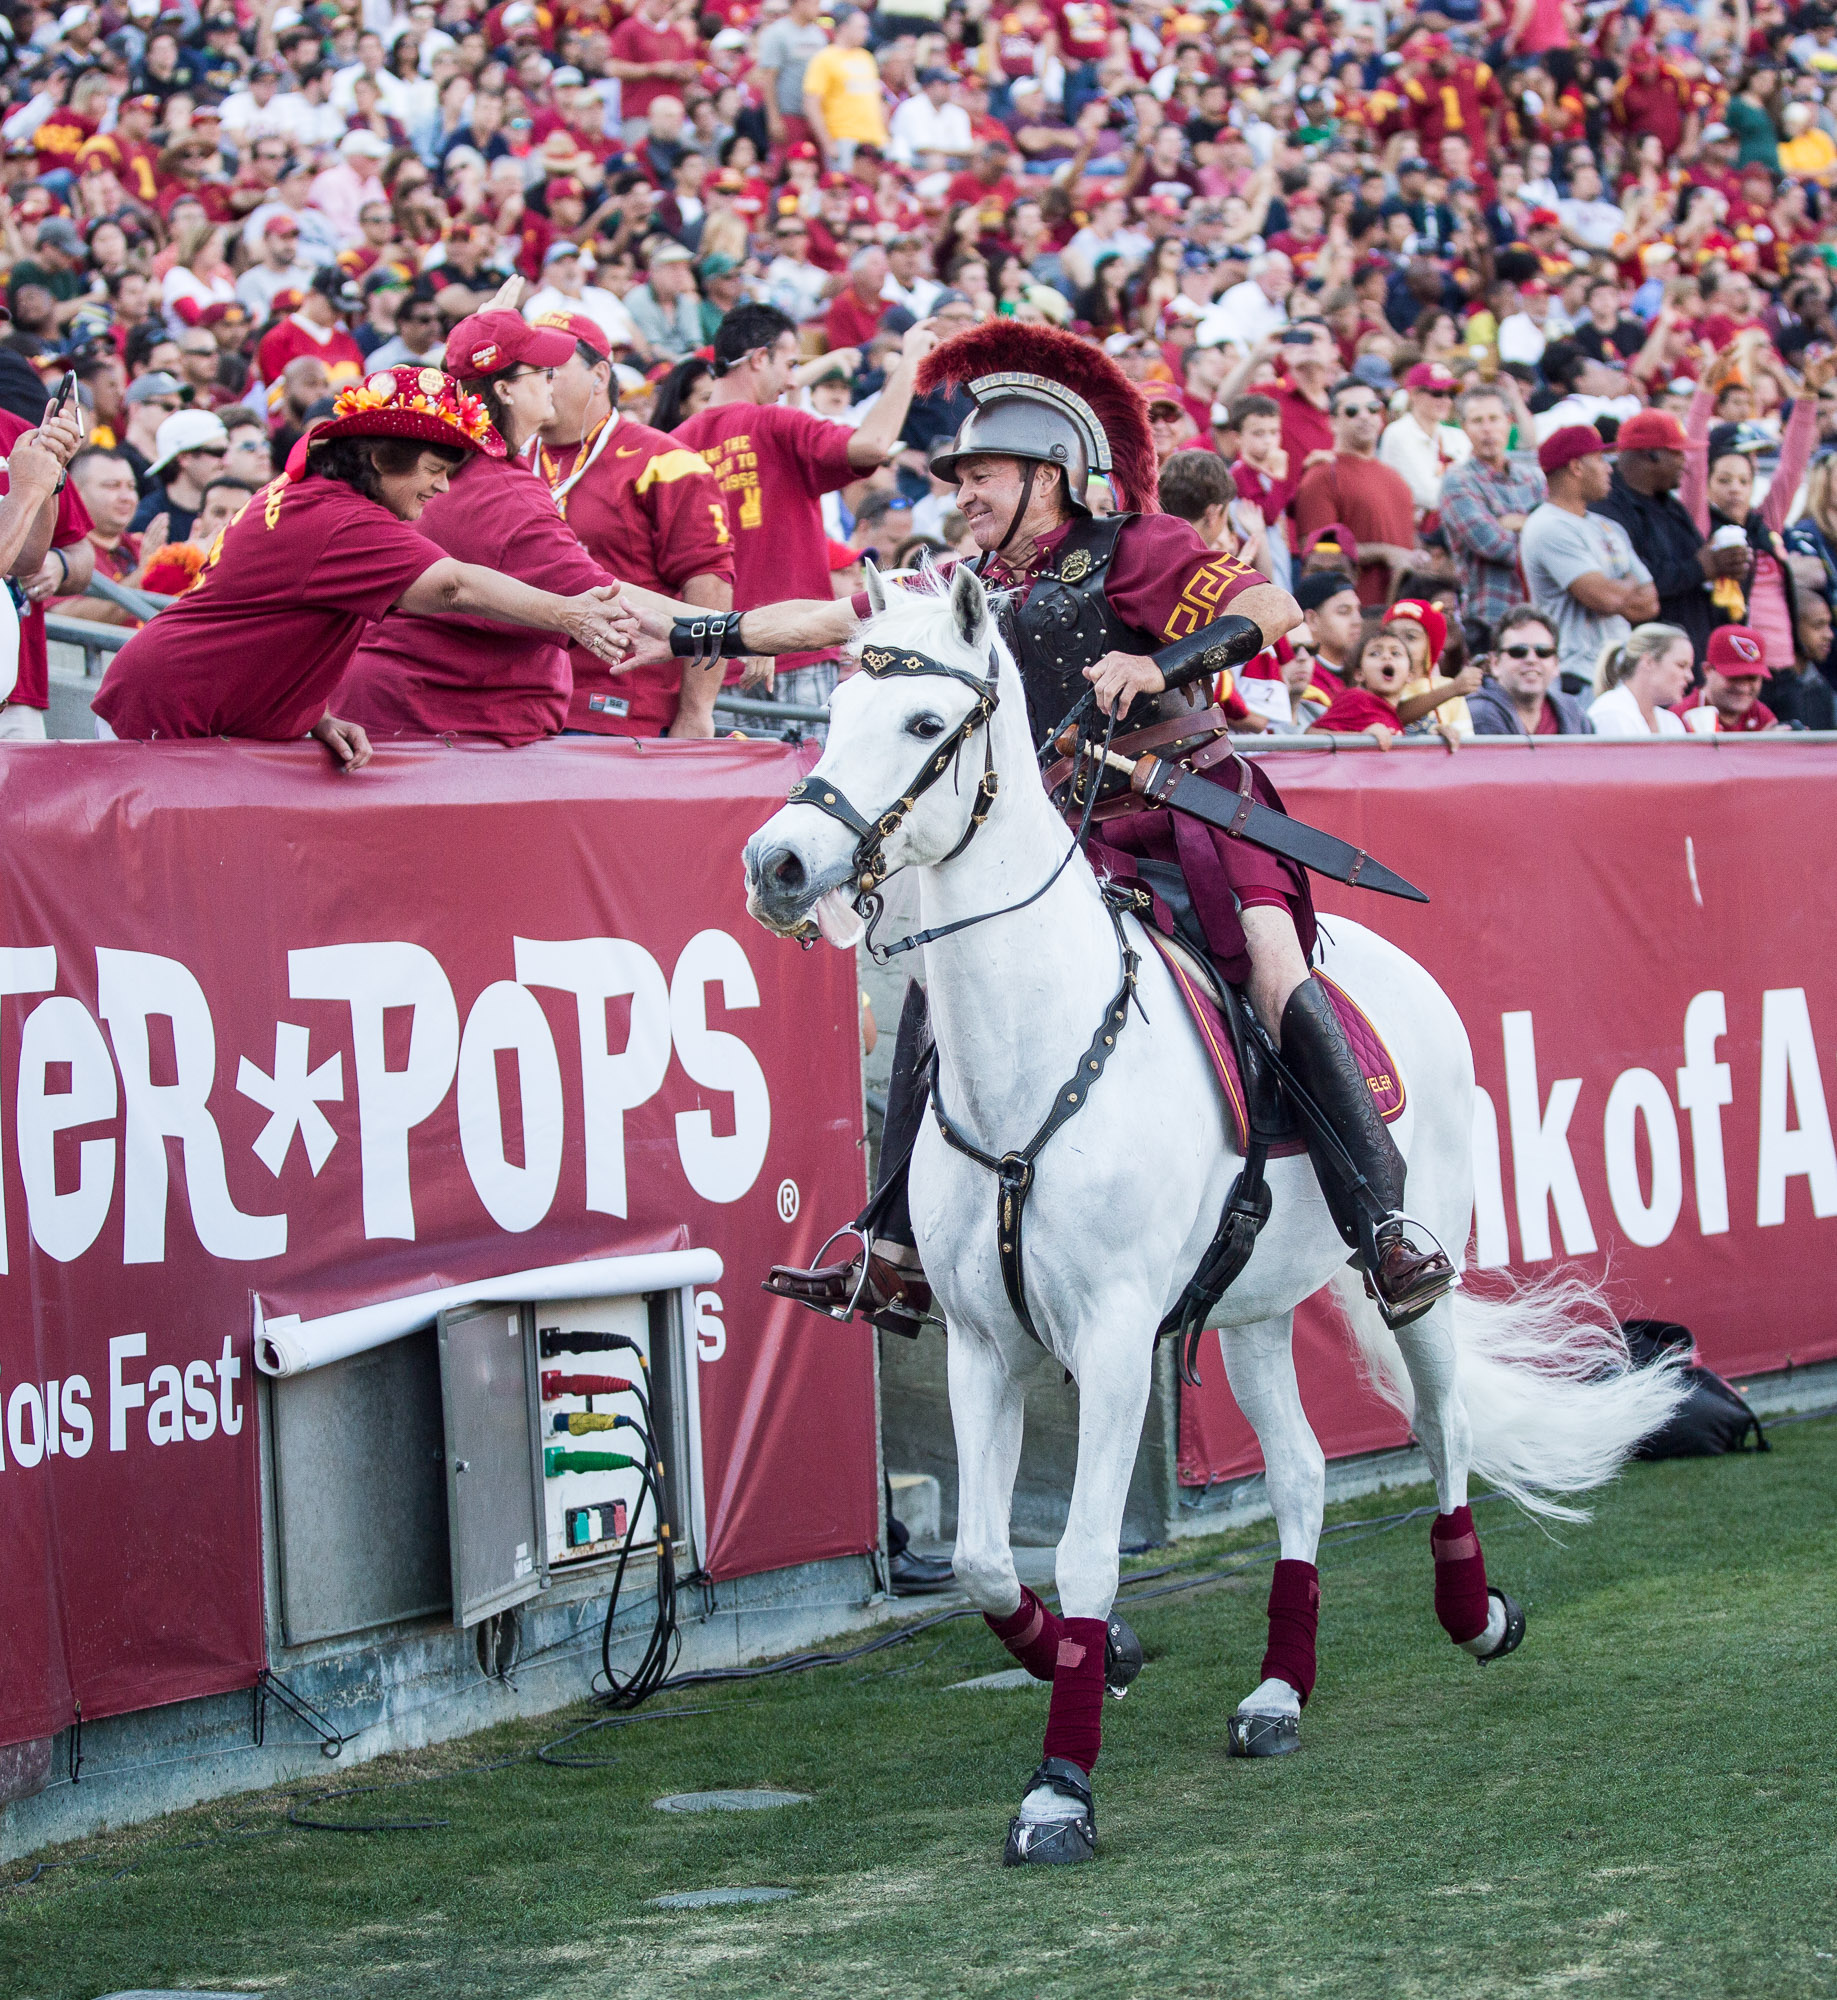 Trojans mascot shakes hands with a fan in the LA Coliseum.